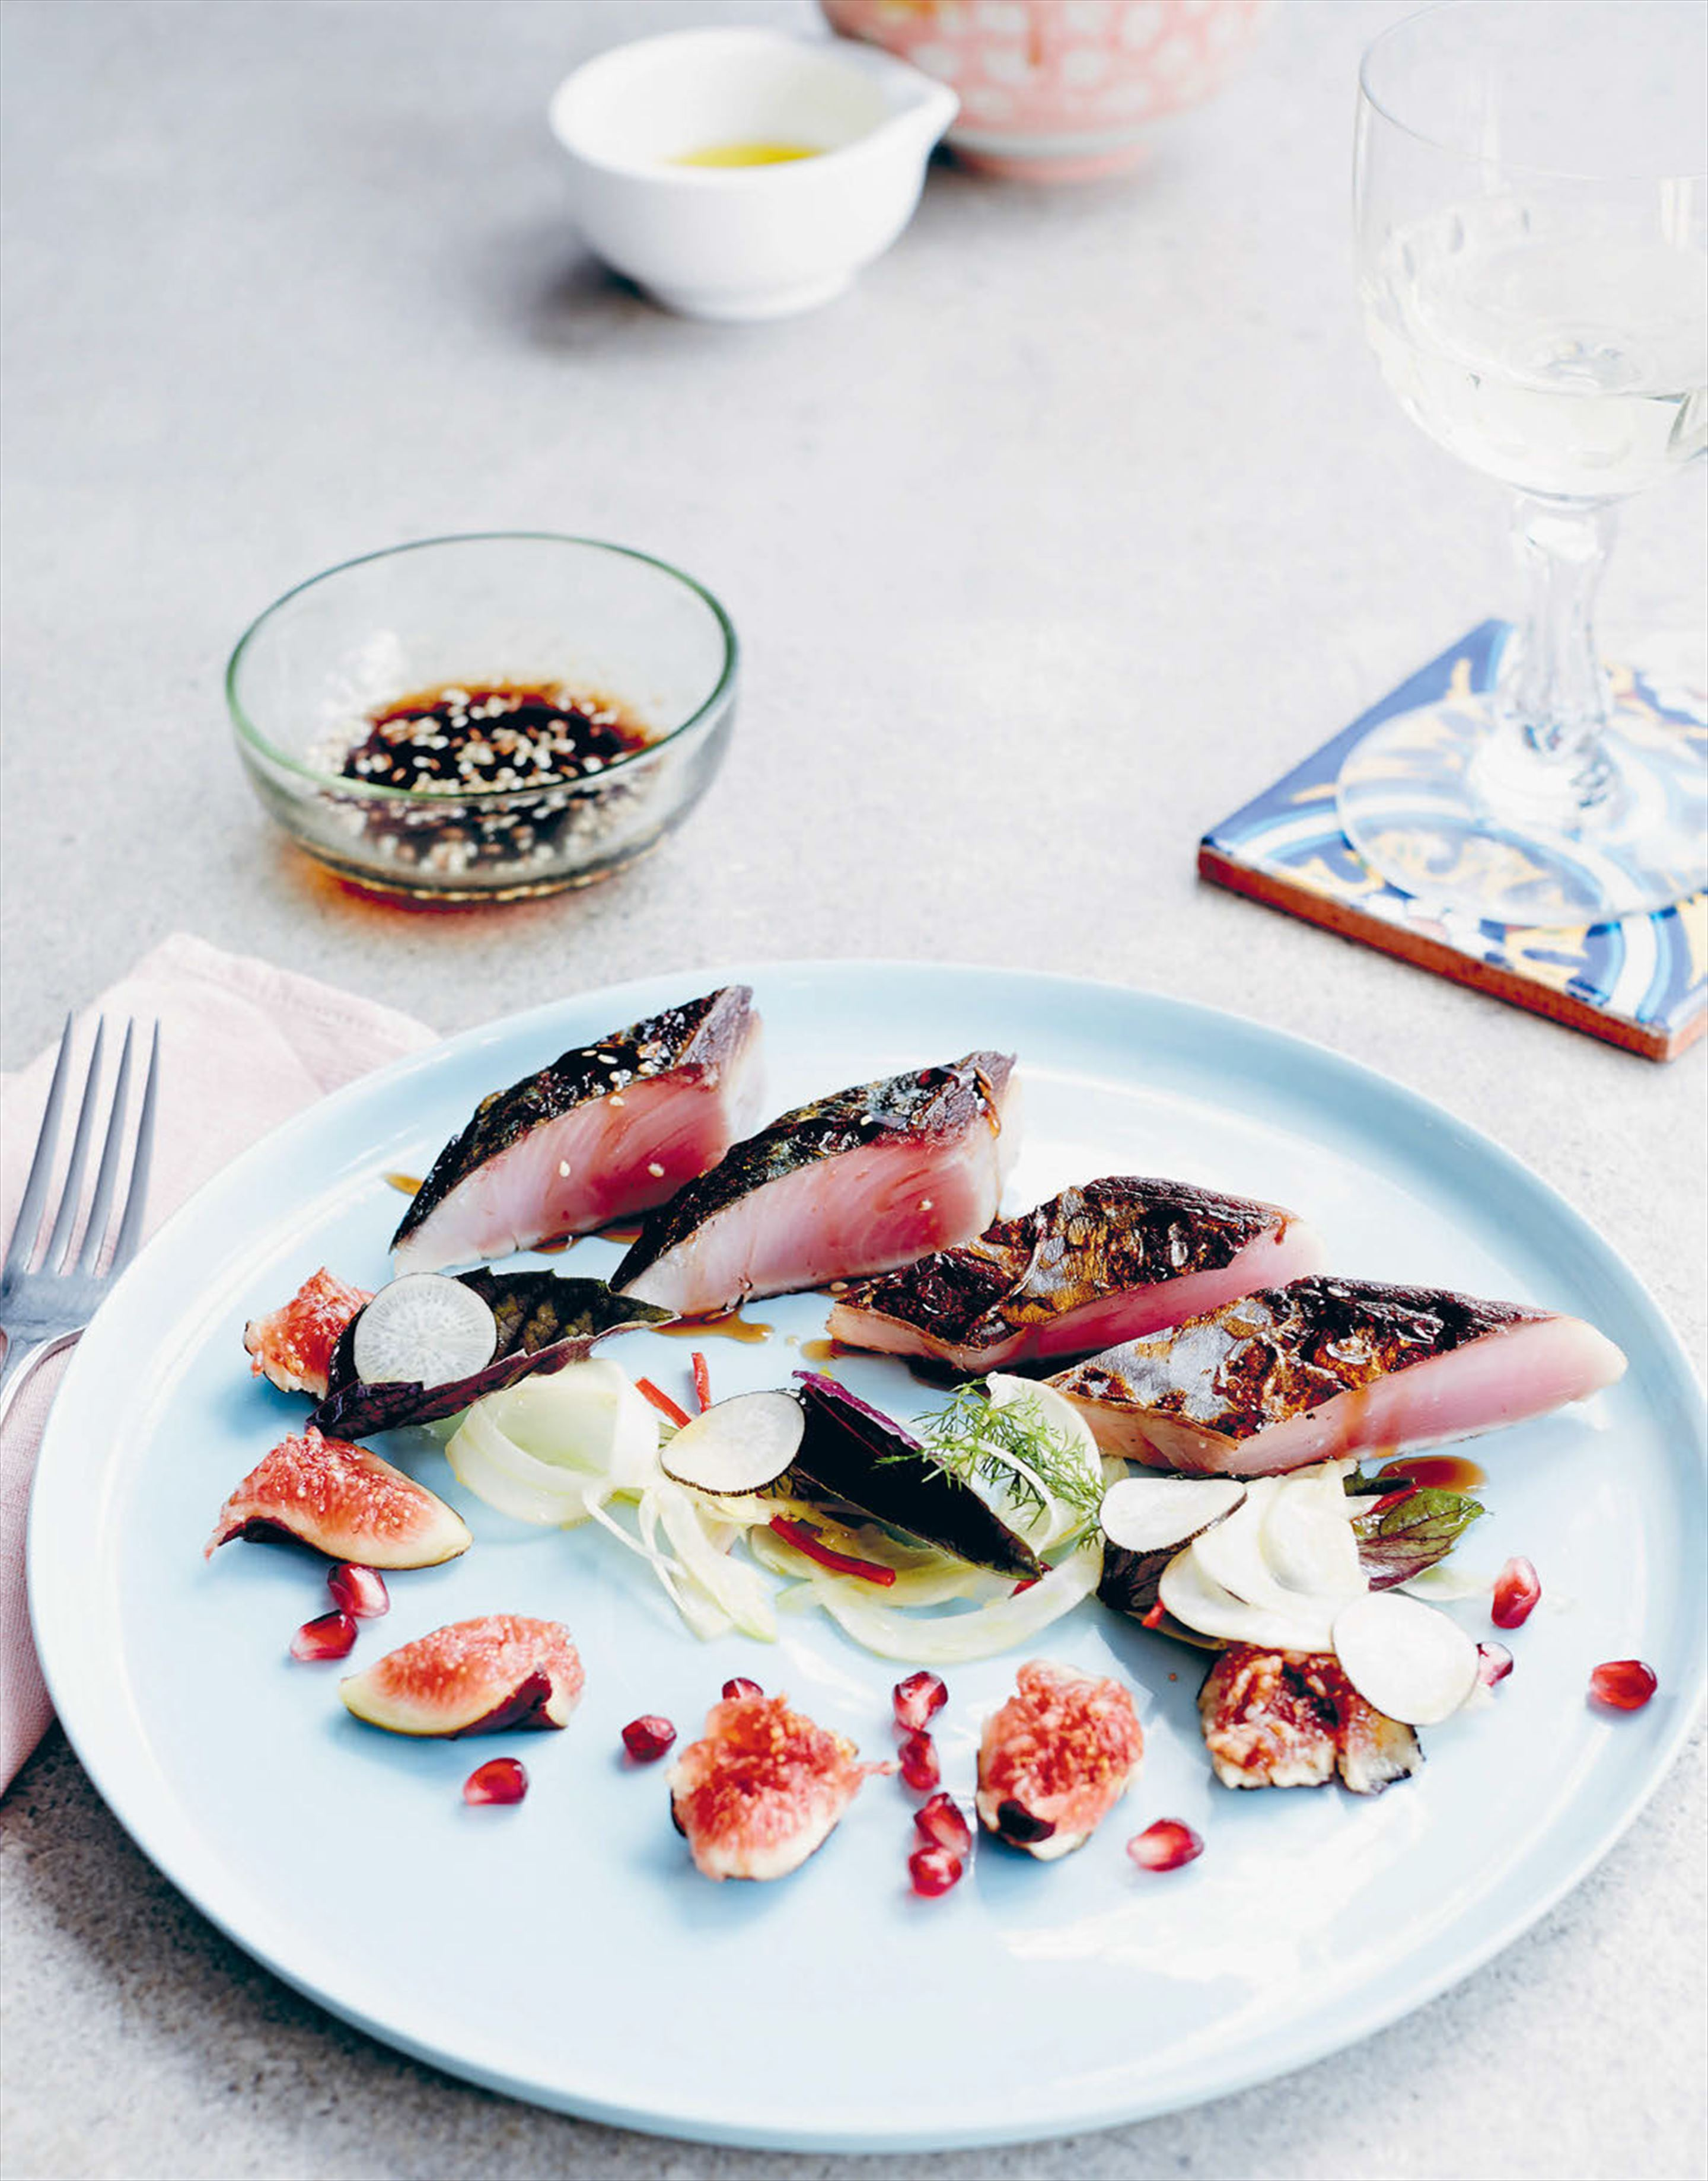 Warm bonito & fennel cebiche salad with figs & pomegranate